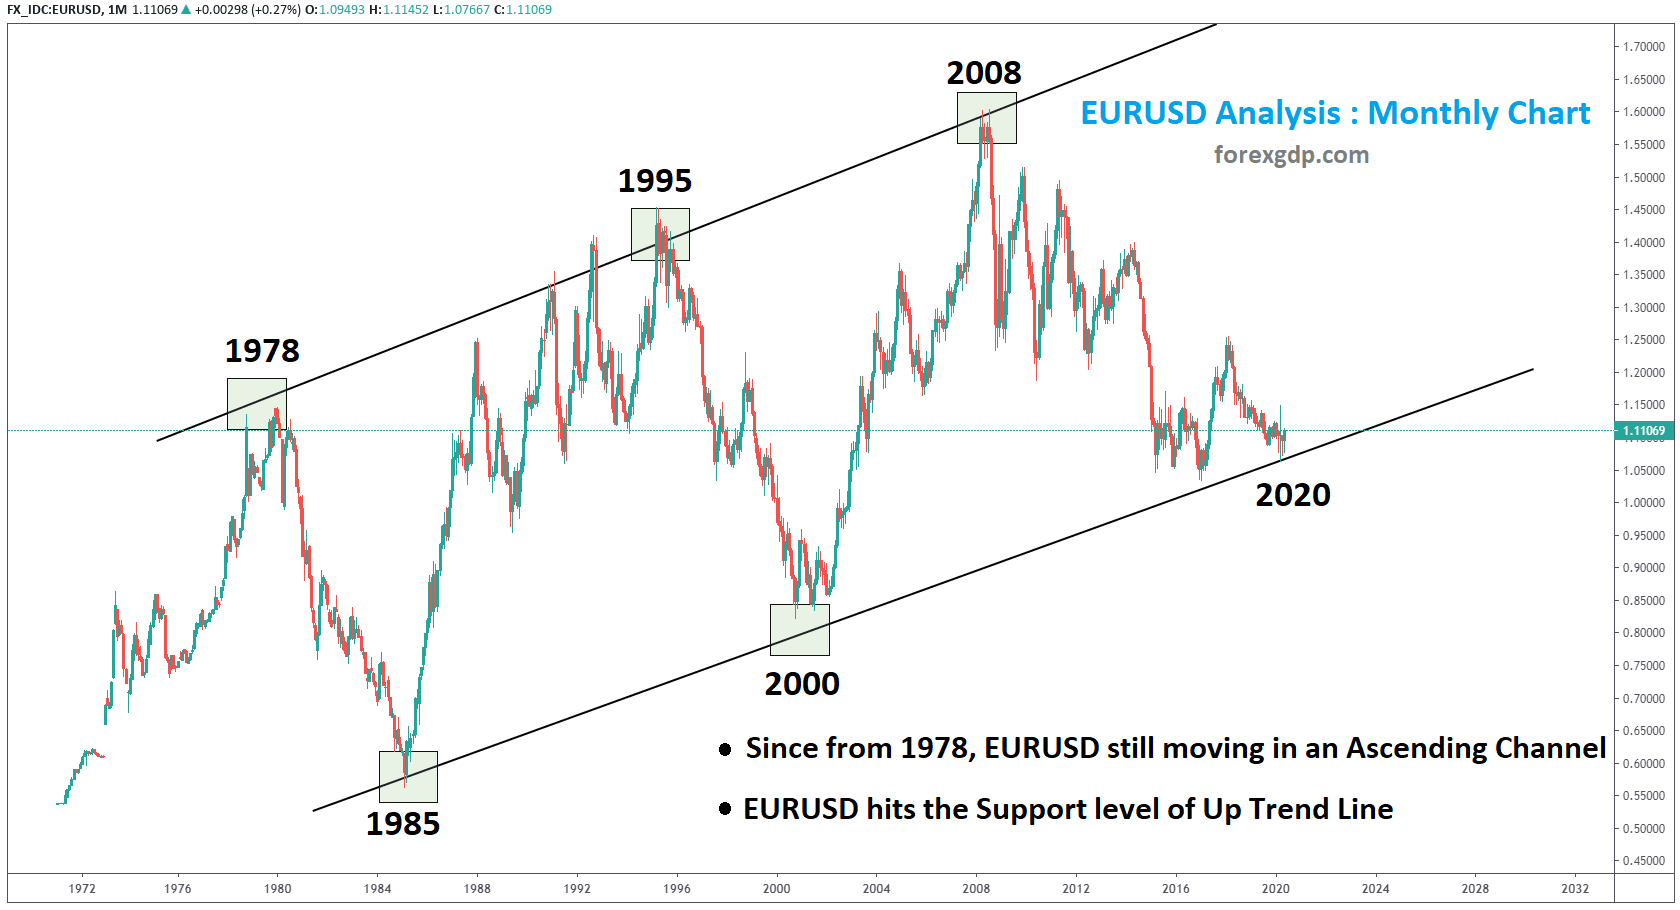 EURUSD Up Trend Ascending Channel Since from 1980